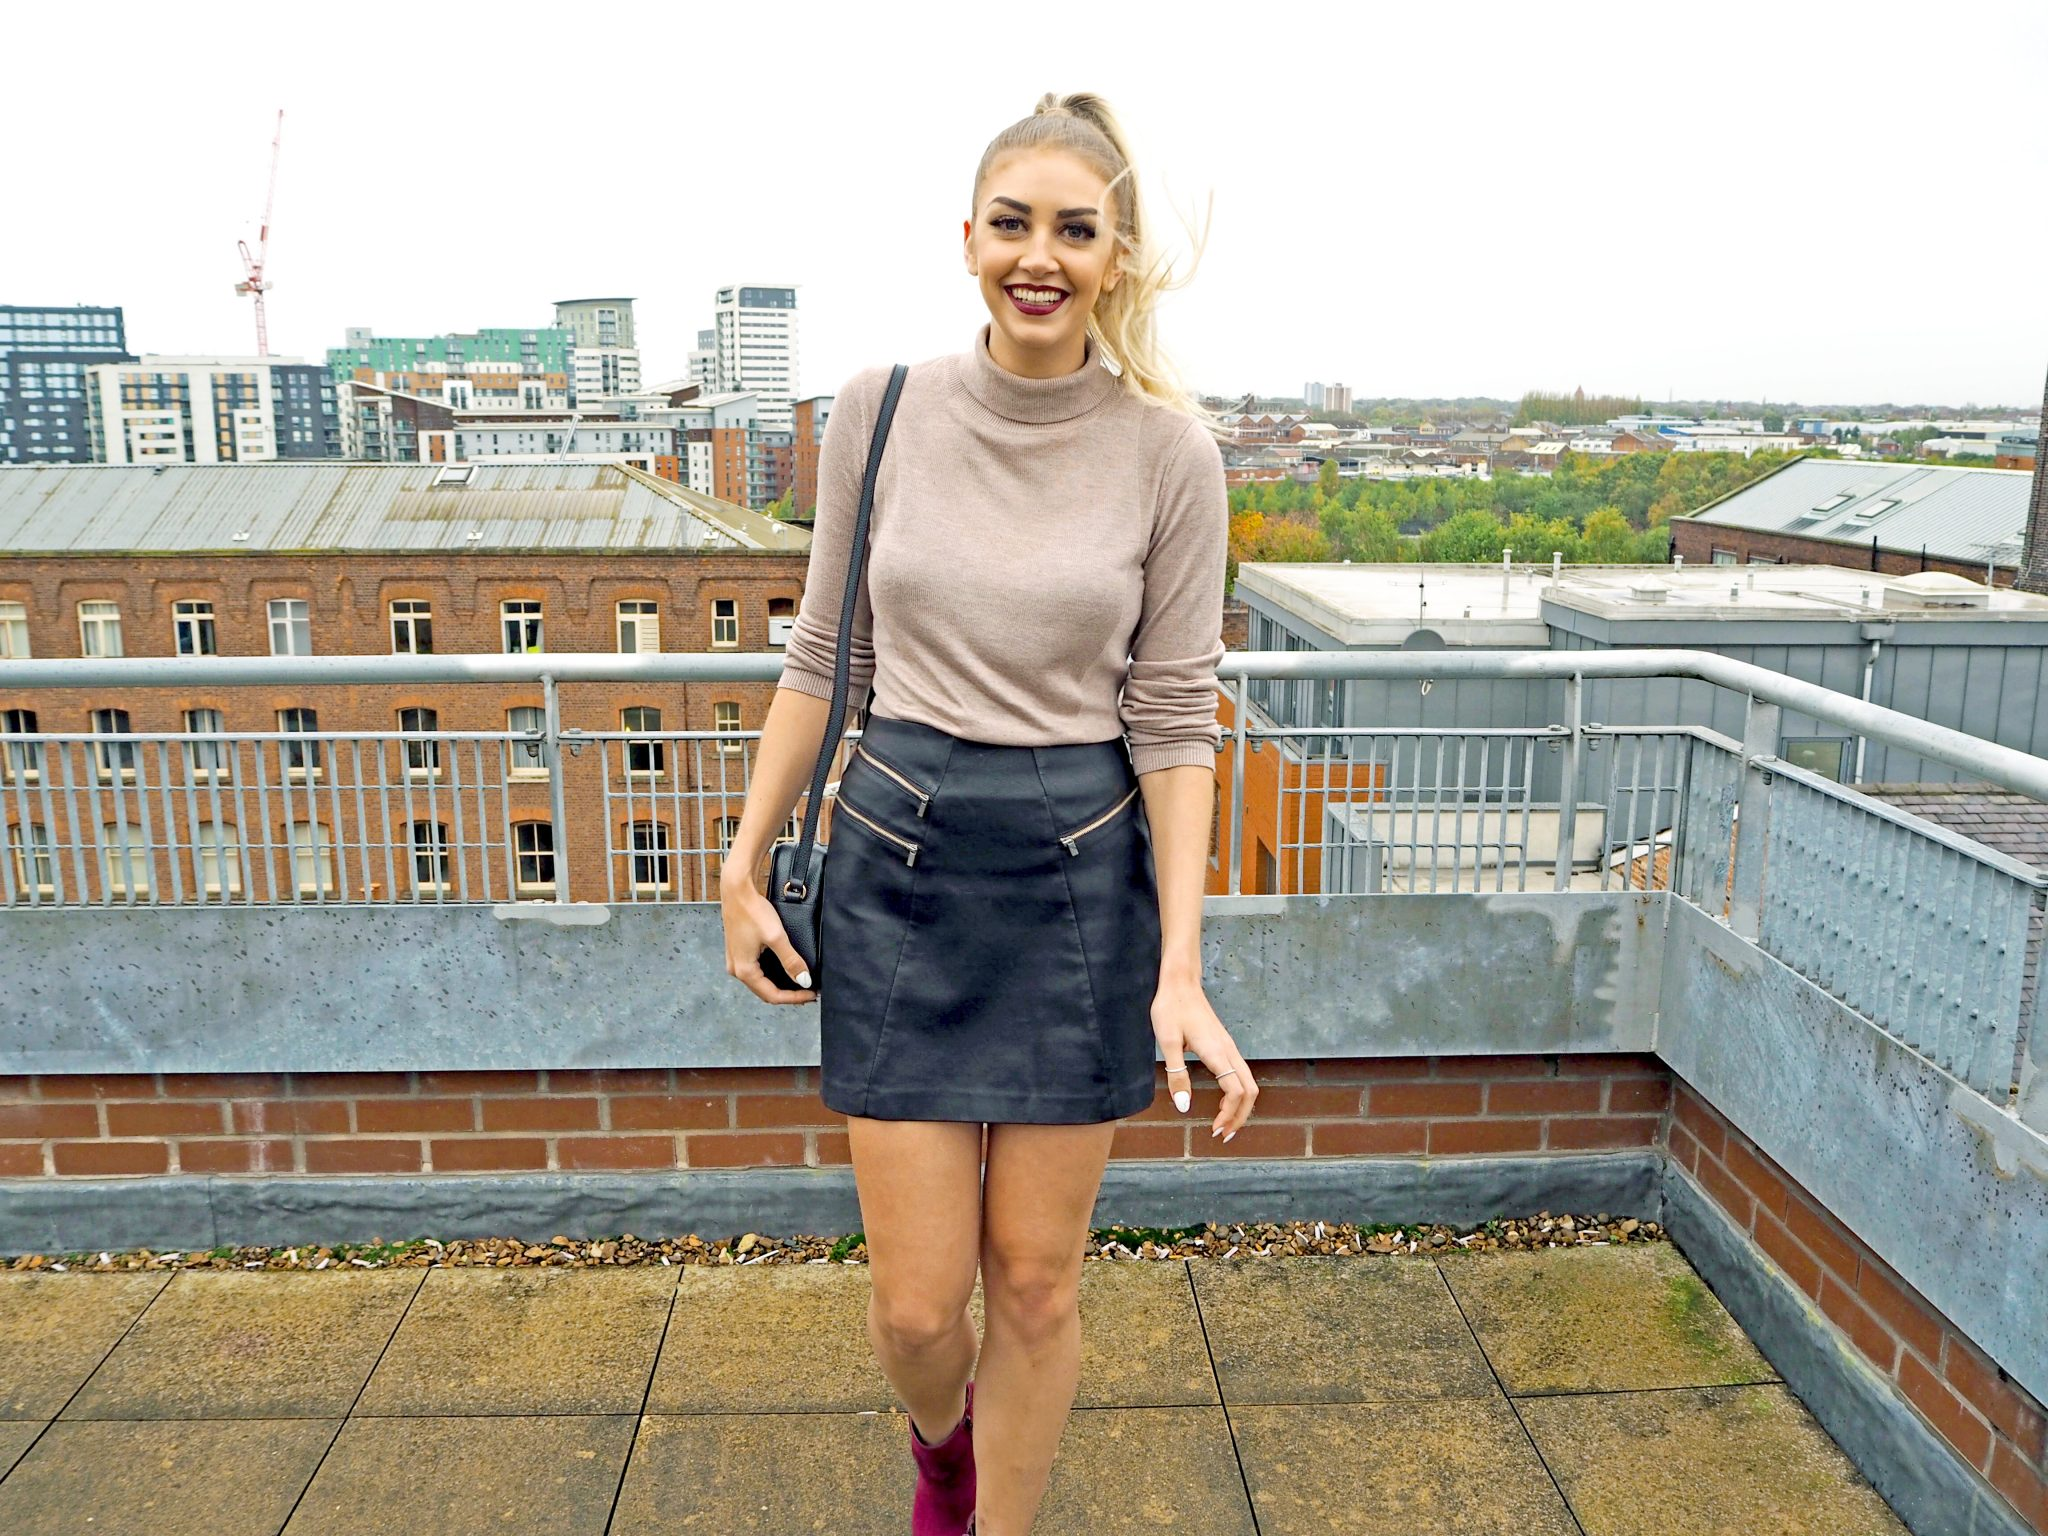 Laura Kate Lucas - Manchester Fashion, Lifestyle an Fitness Blogger   JustFab UK Autumn Boots #thebootstory